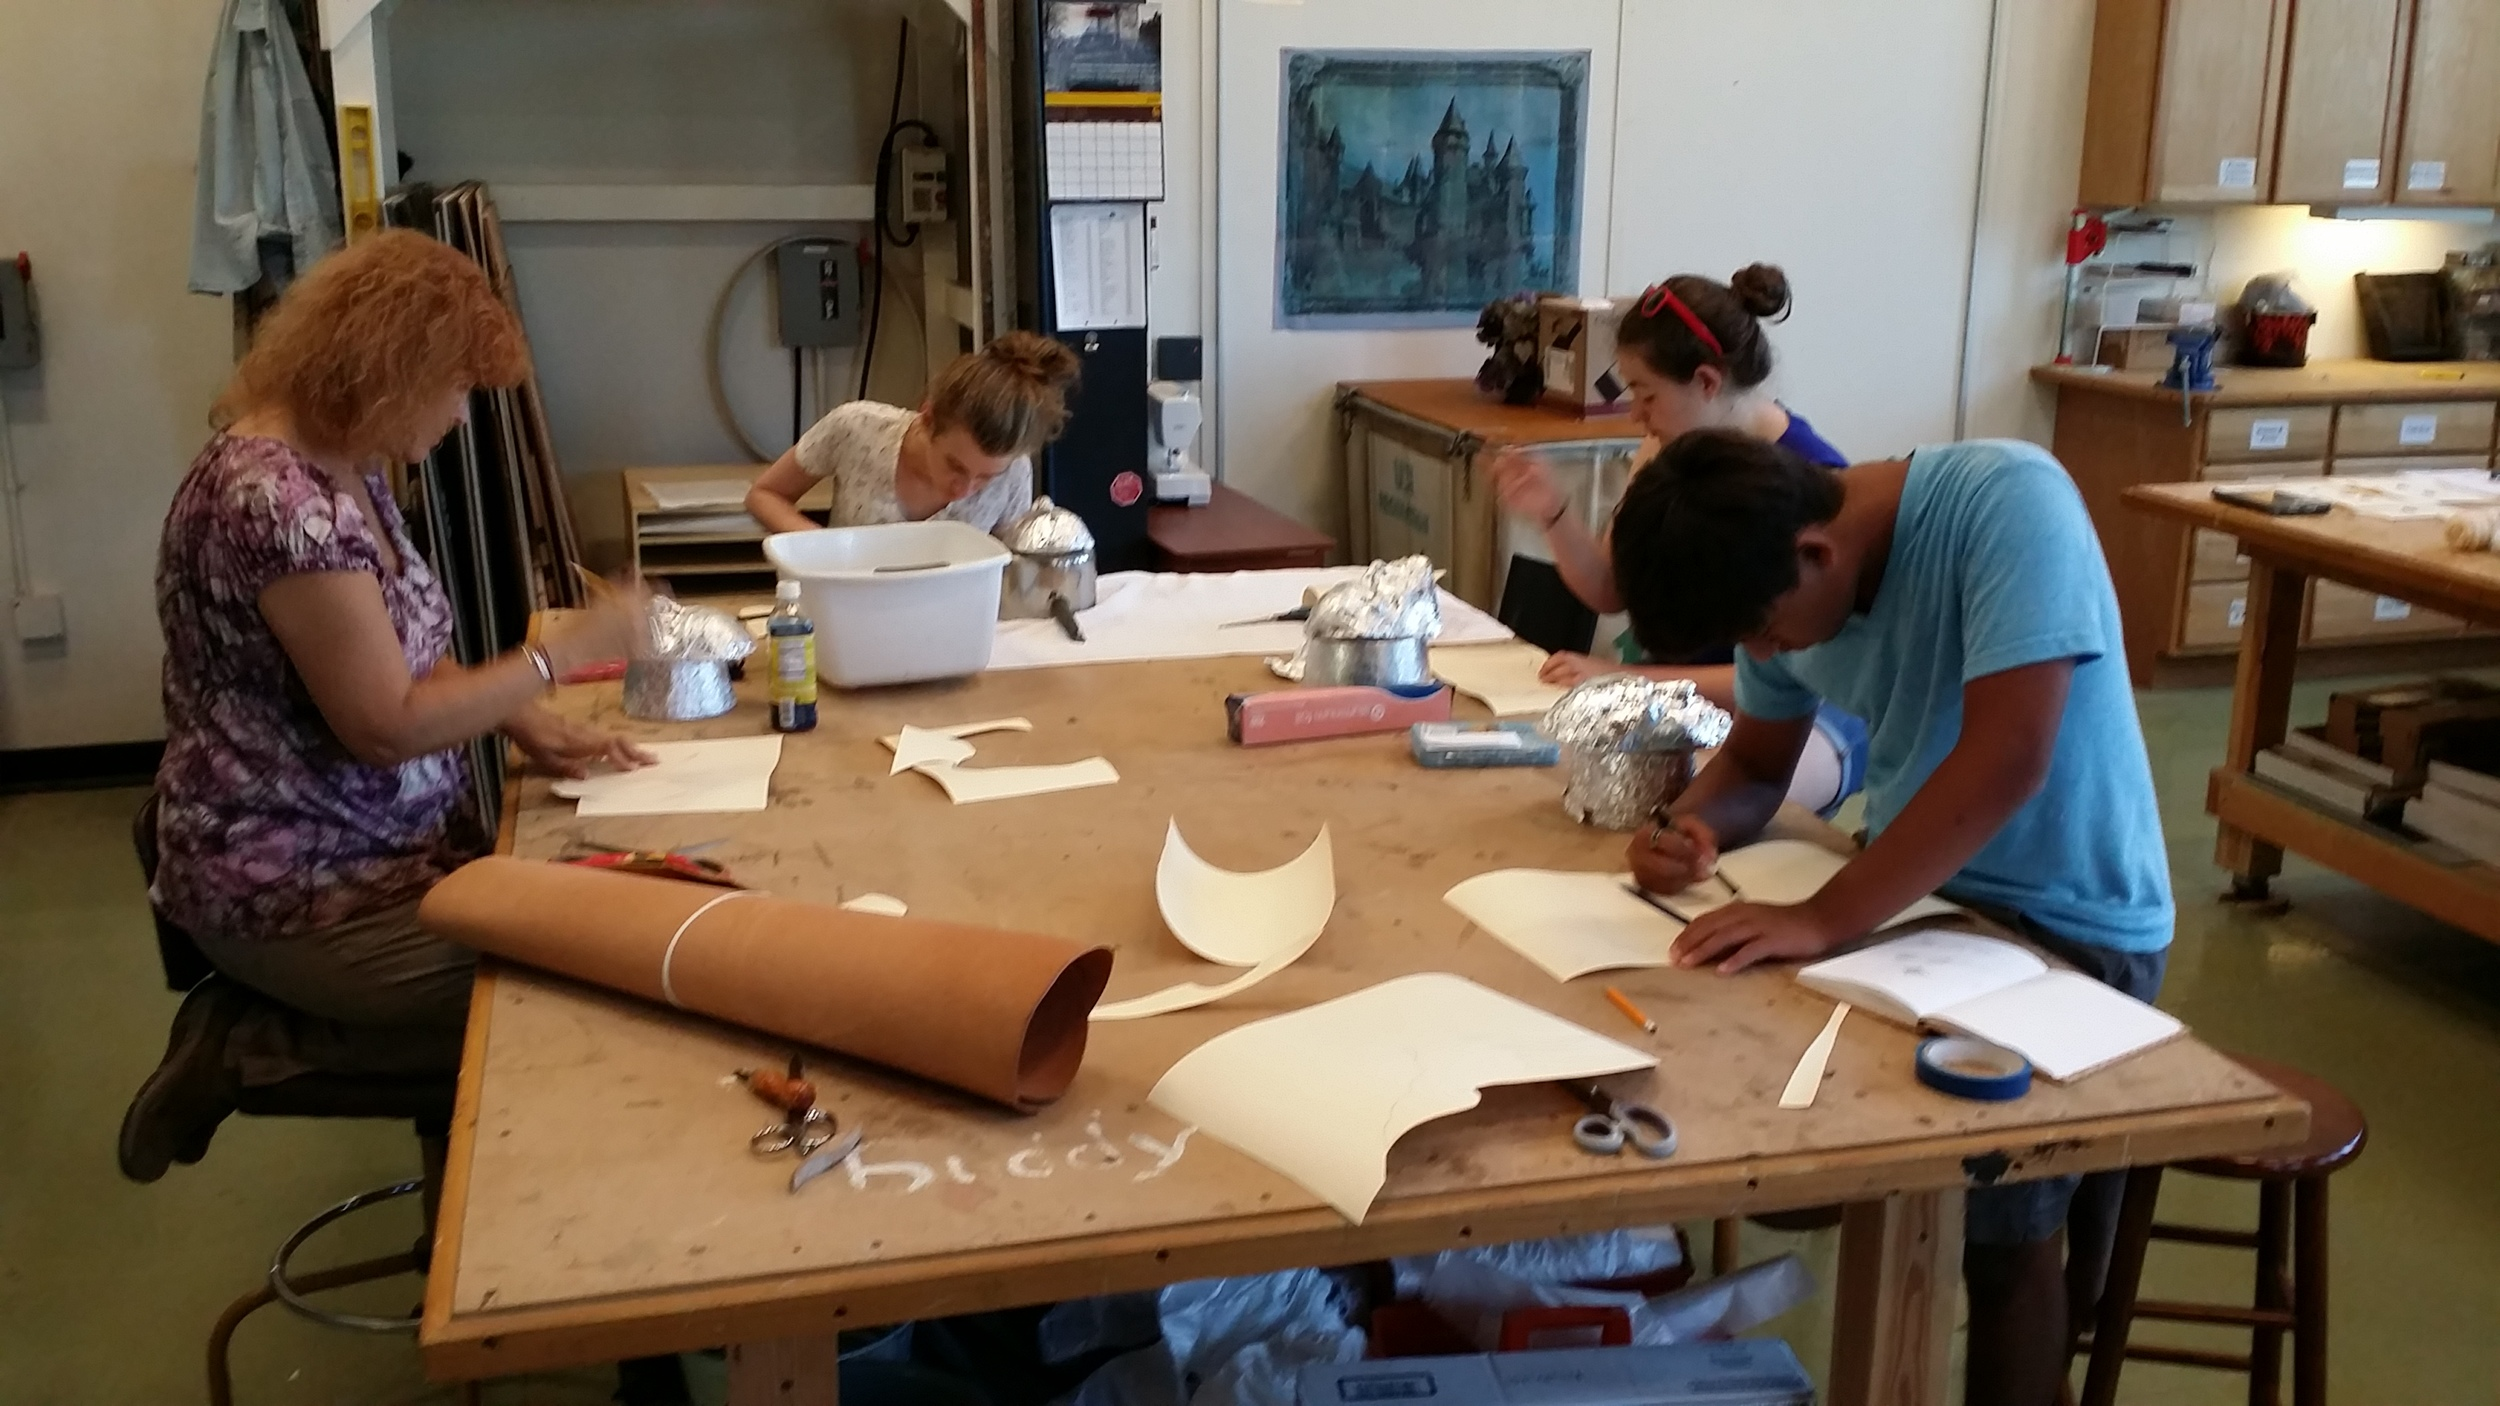 ( left to right )Pam, Eleanor, Maddie, and Bryce make their patterns out of tack board.